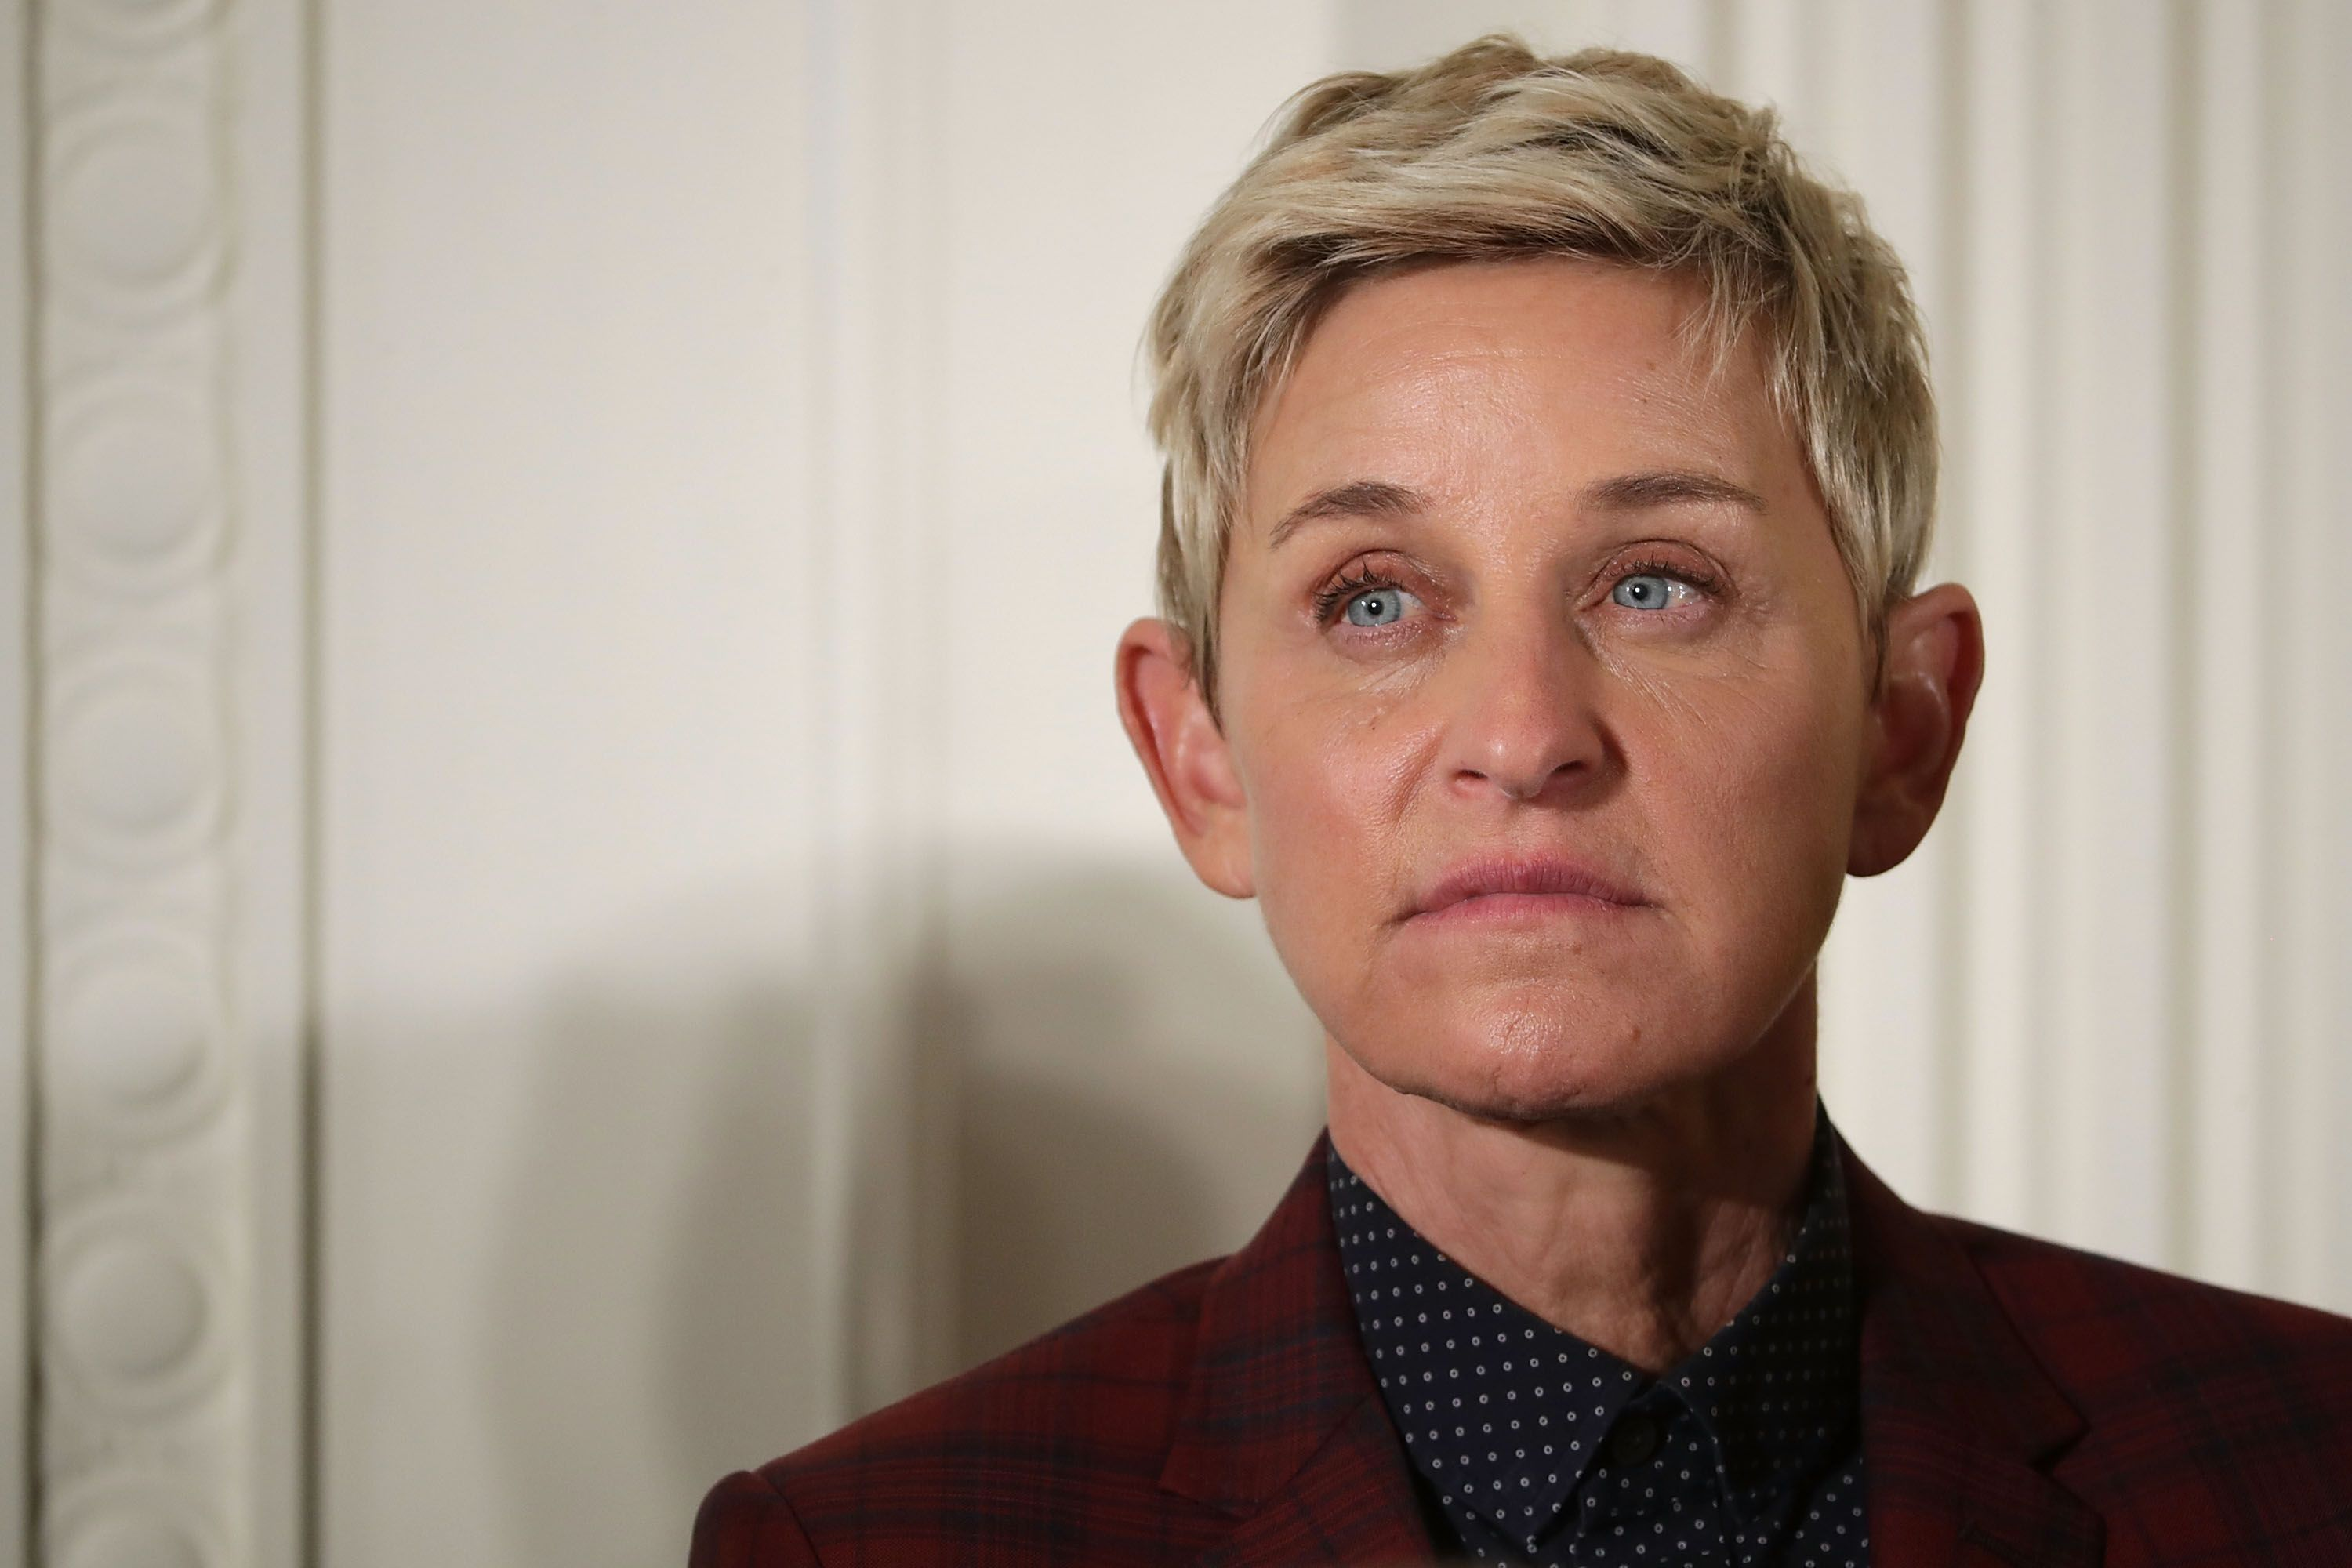 Ellen DeGeneres being awarded the Presidential Medal of Freedom during a ceremony at the White House on November 22, 2016, in Washington, DC.   Photo: Chip Somodevilla/Getty Images